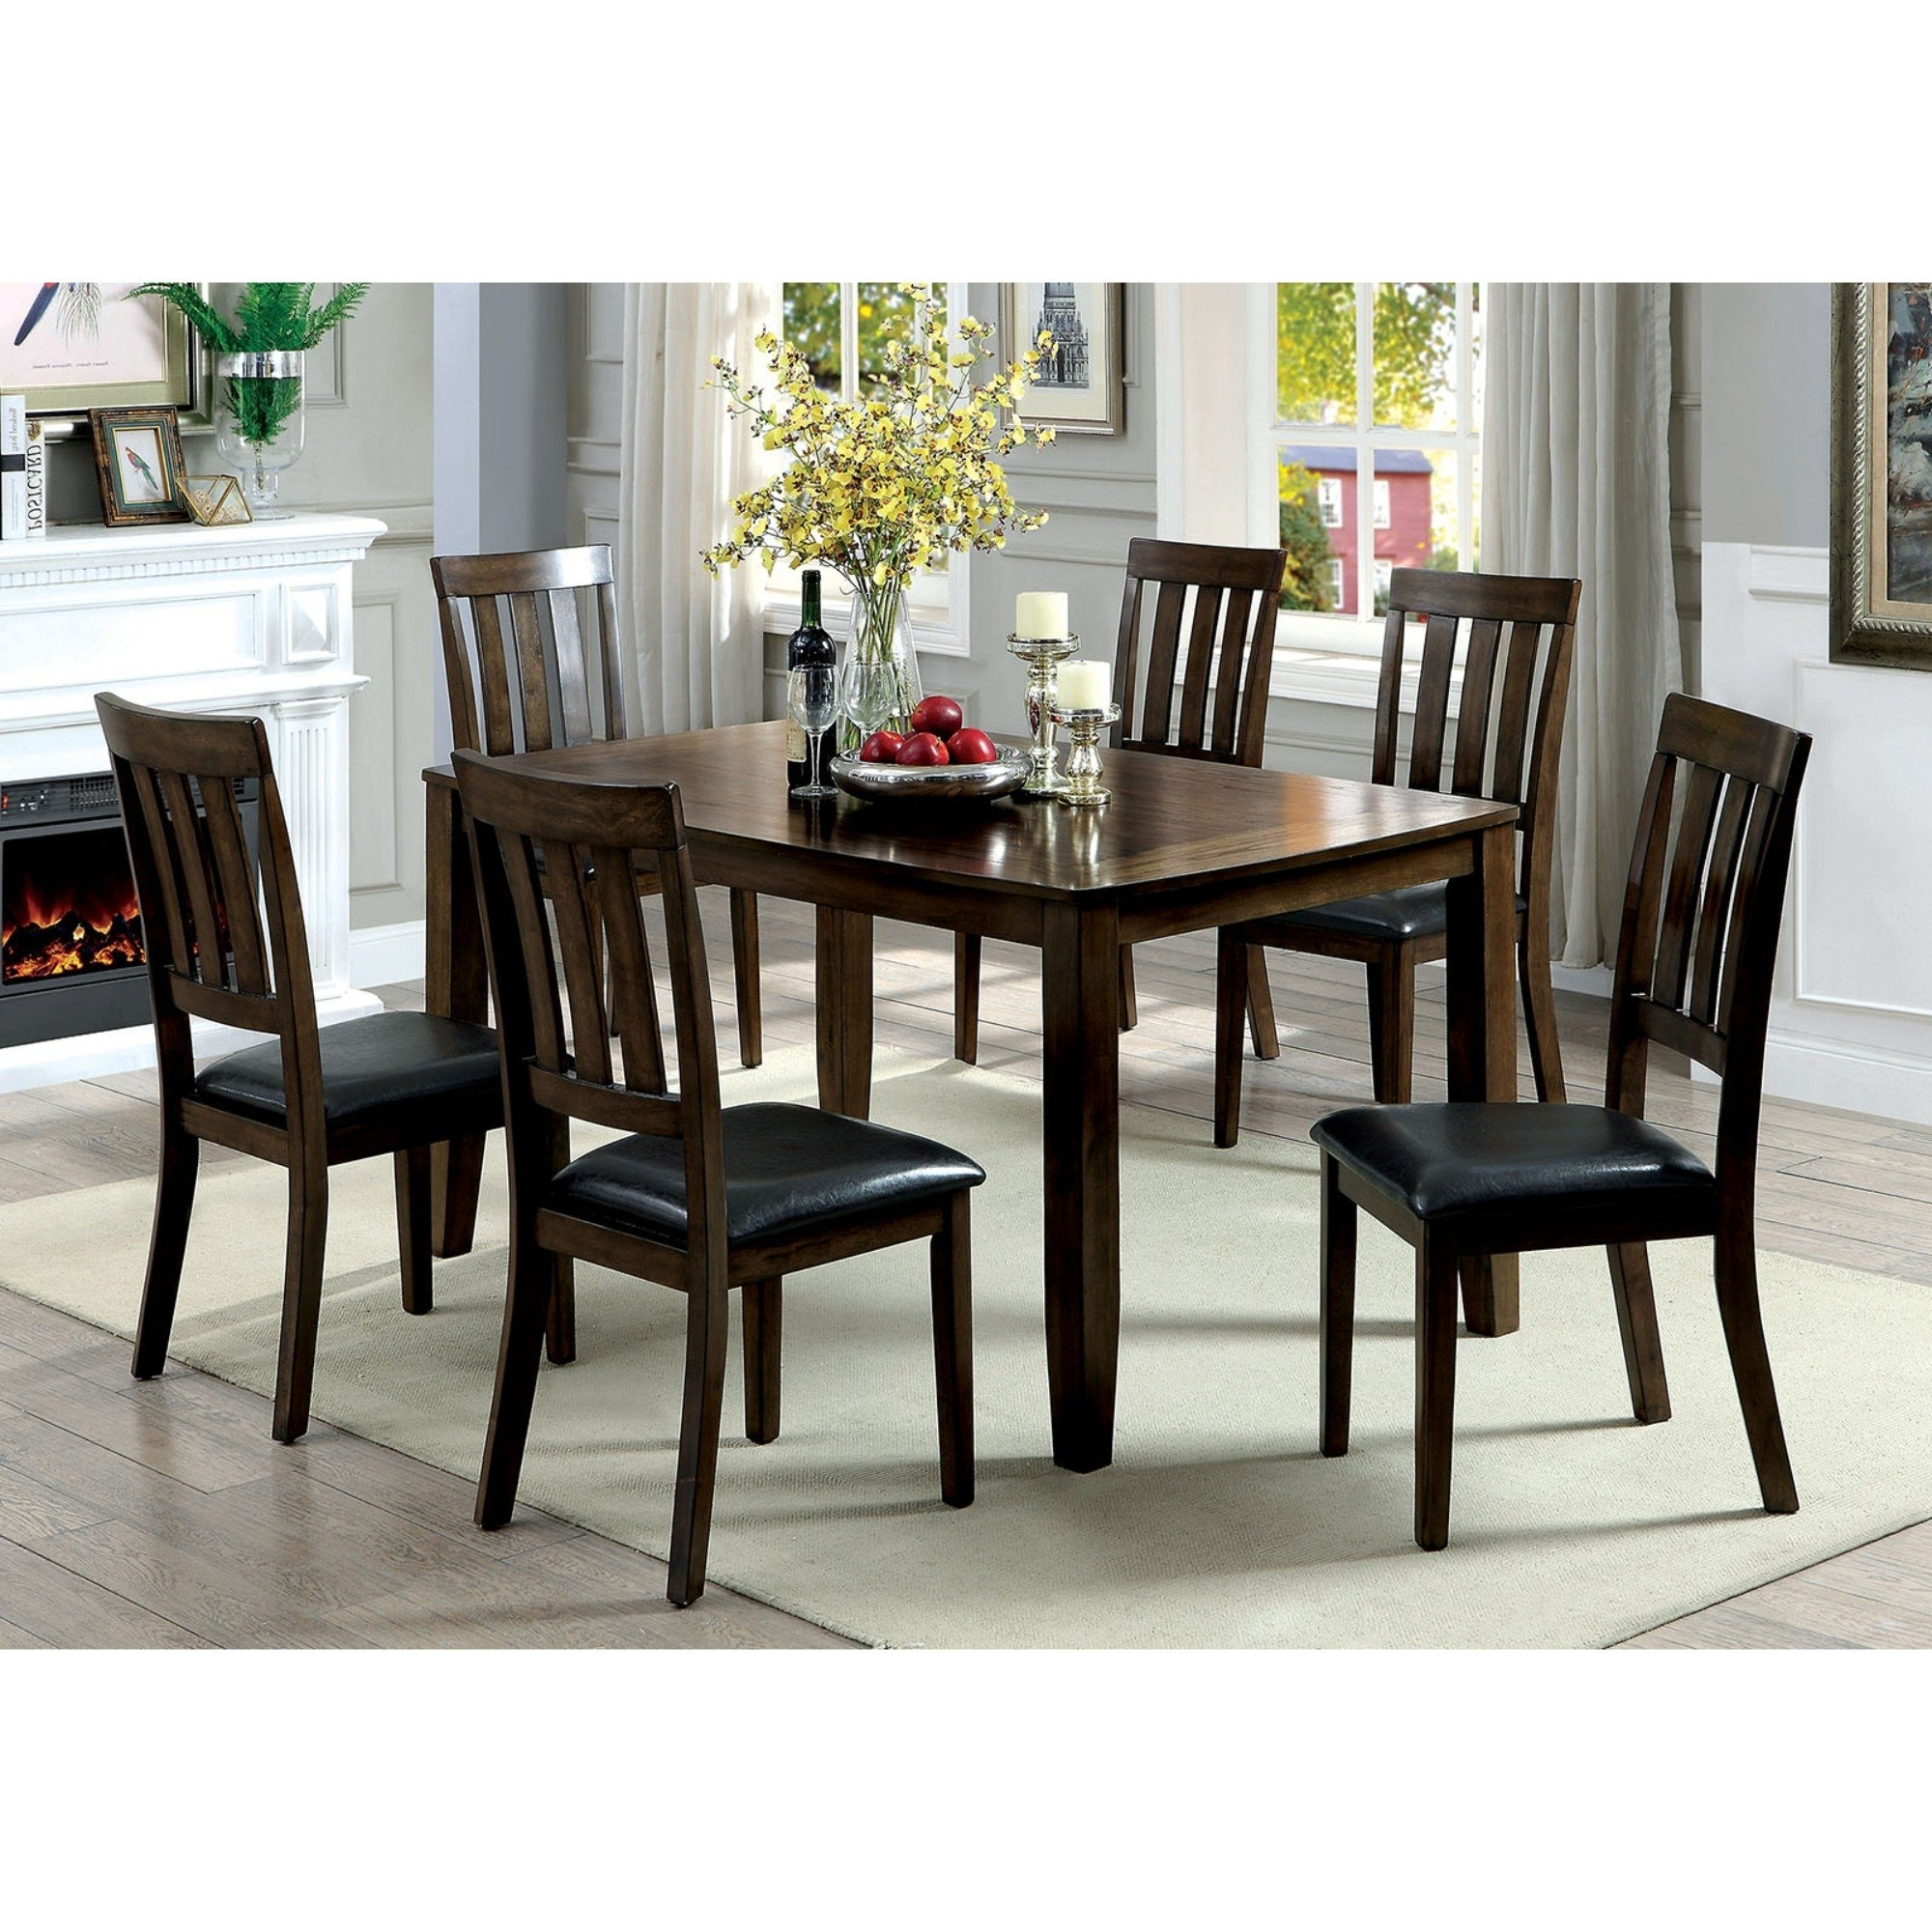 Preferred Millwood Pines Devon Wooden 7 Piece Counter Height Dining Table Set With Regard To Candice Ii 7 Piece Extension Rectangular Dining Sets With Slat Back Side Chairs (View 5 of 25)